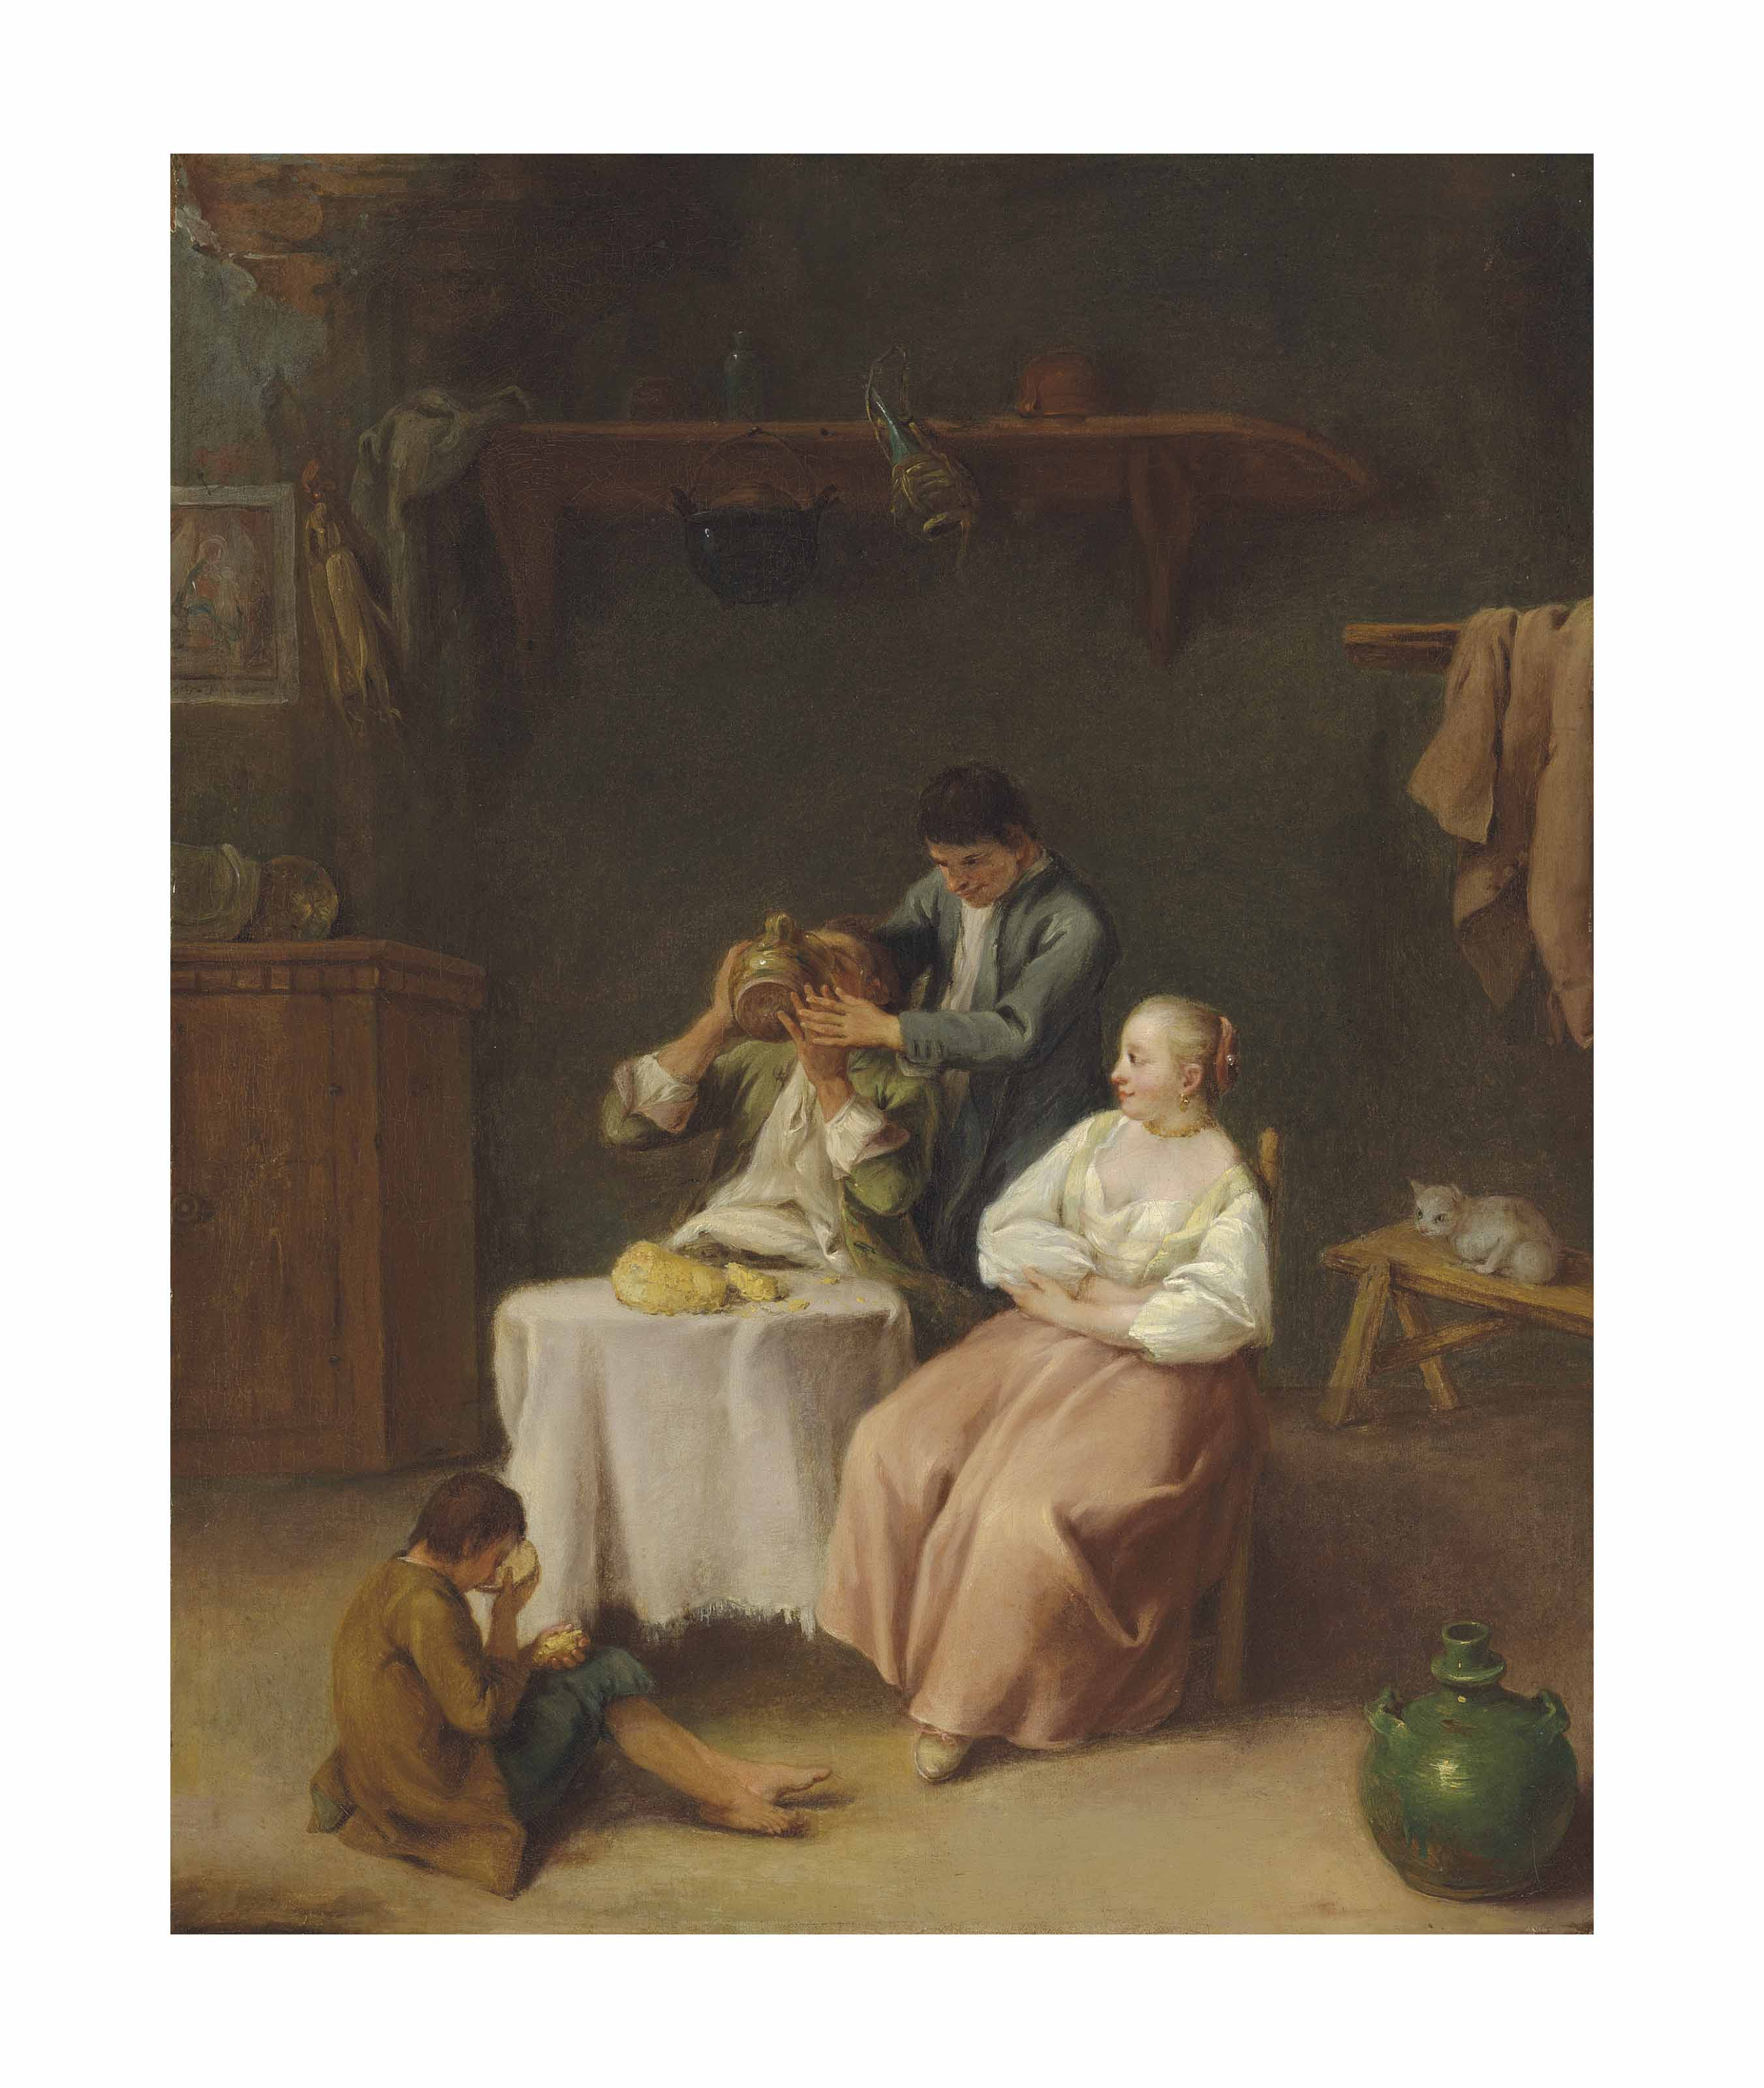 Figures eating and drinking in an interior